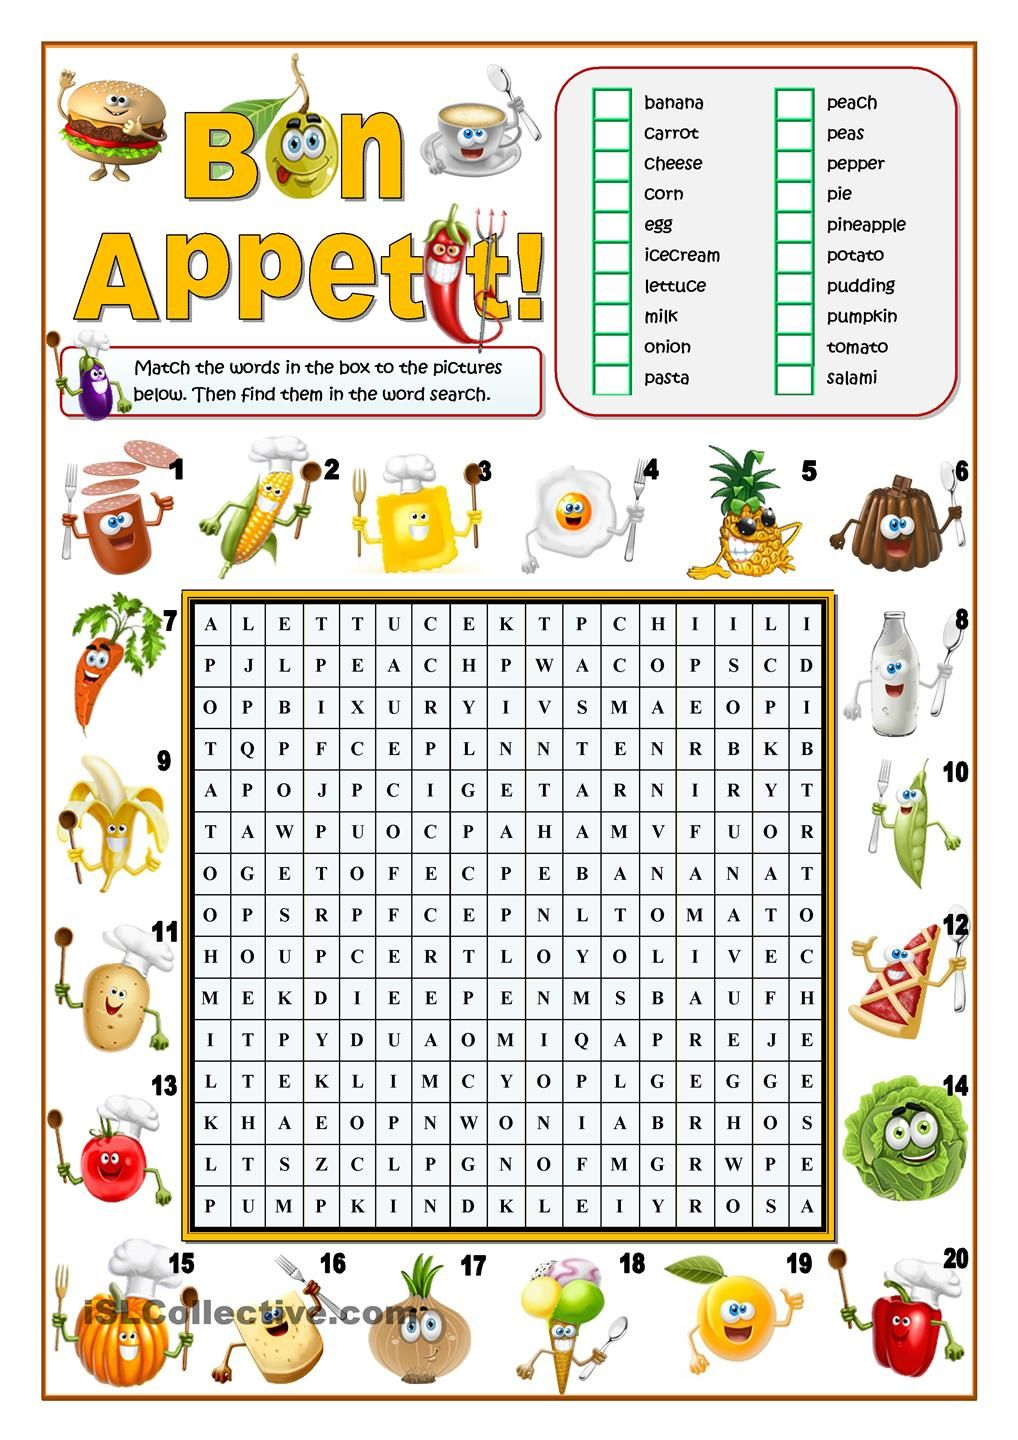 BON APPETIT! - FOOD WORD SEARCH | English (crosswords) | Pinterest ...